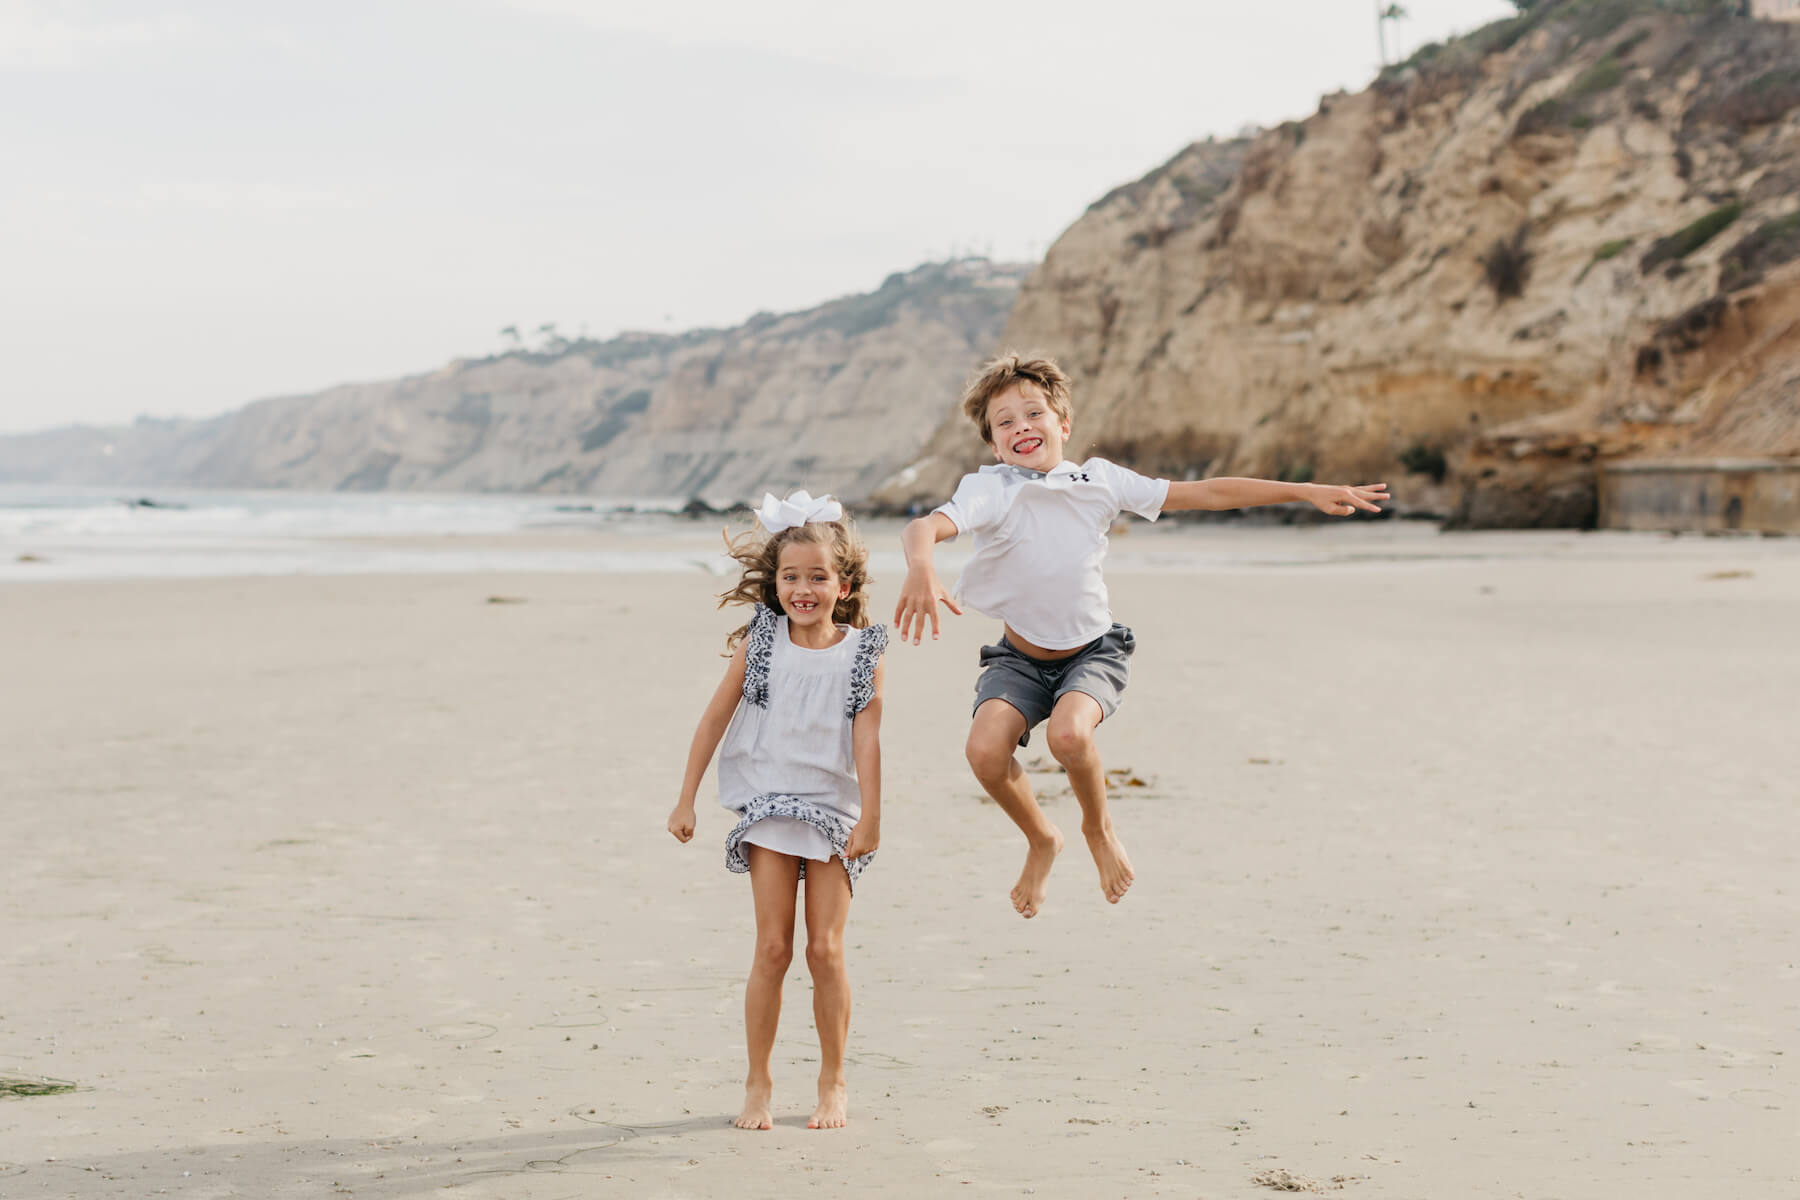 brother and sister on the beach, jumping in San Diego, California